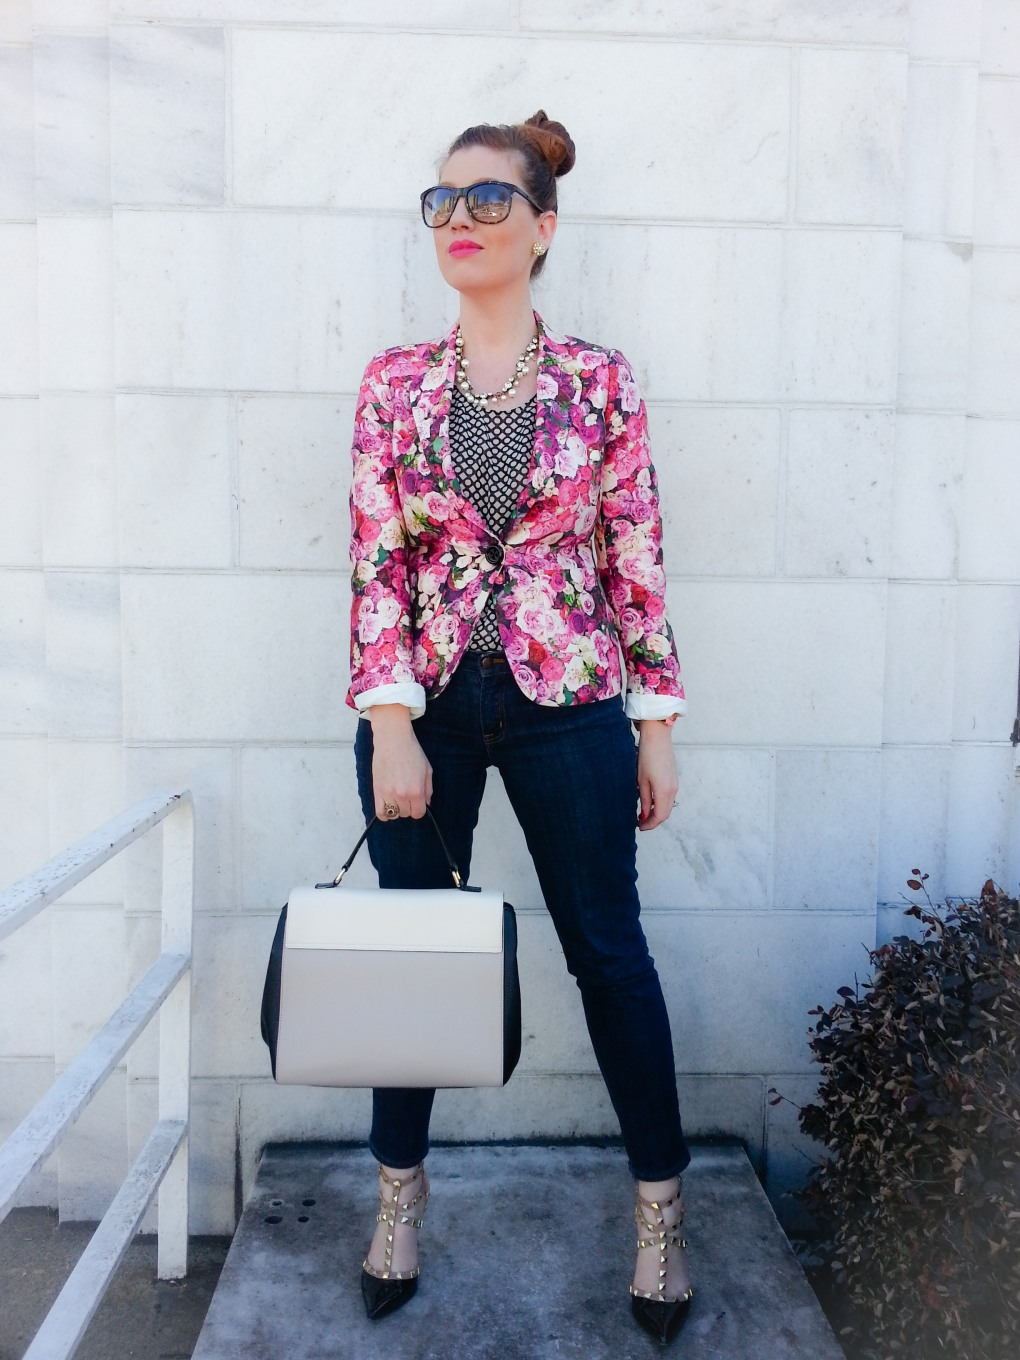 Jacket: Kate Spade NY Blouse: GAP Jeans: JCREW Bag: Kate Spade NY Heels: BCBGeneration